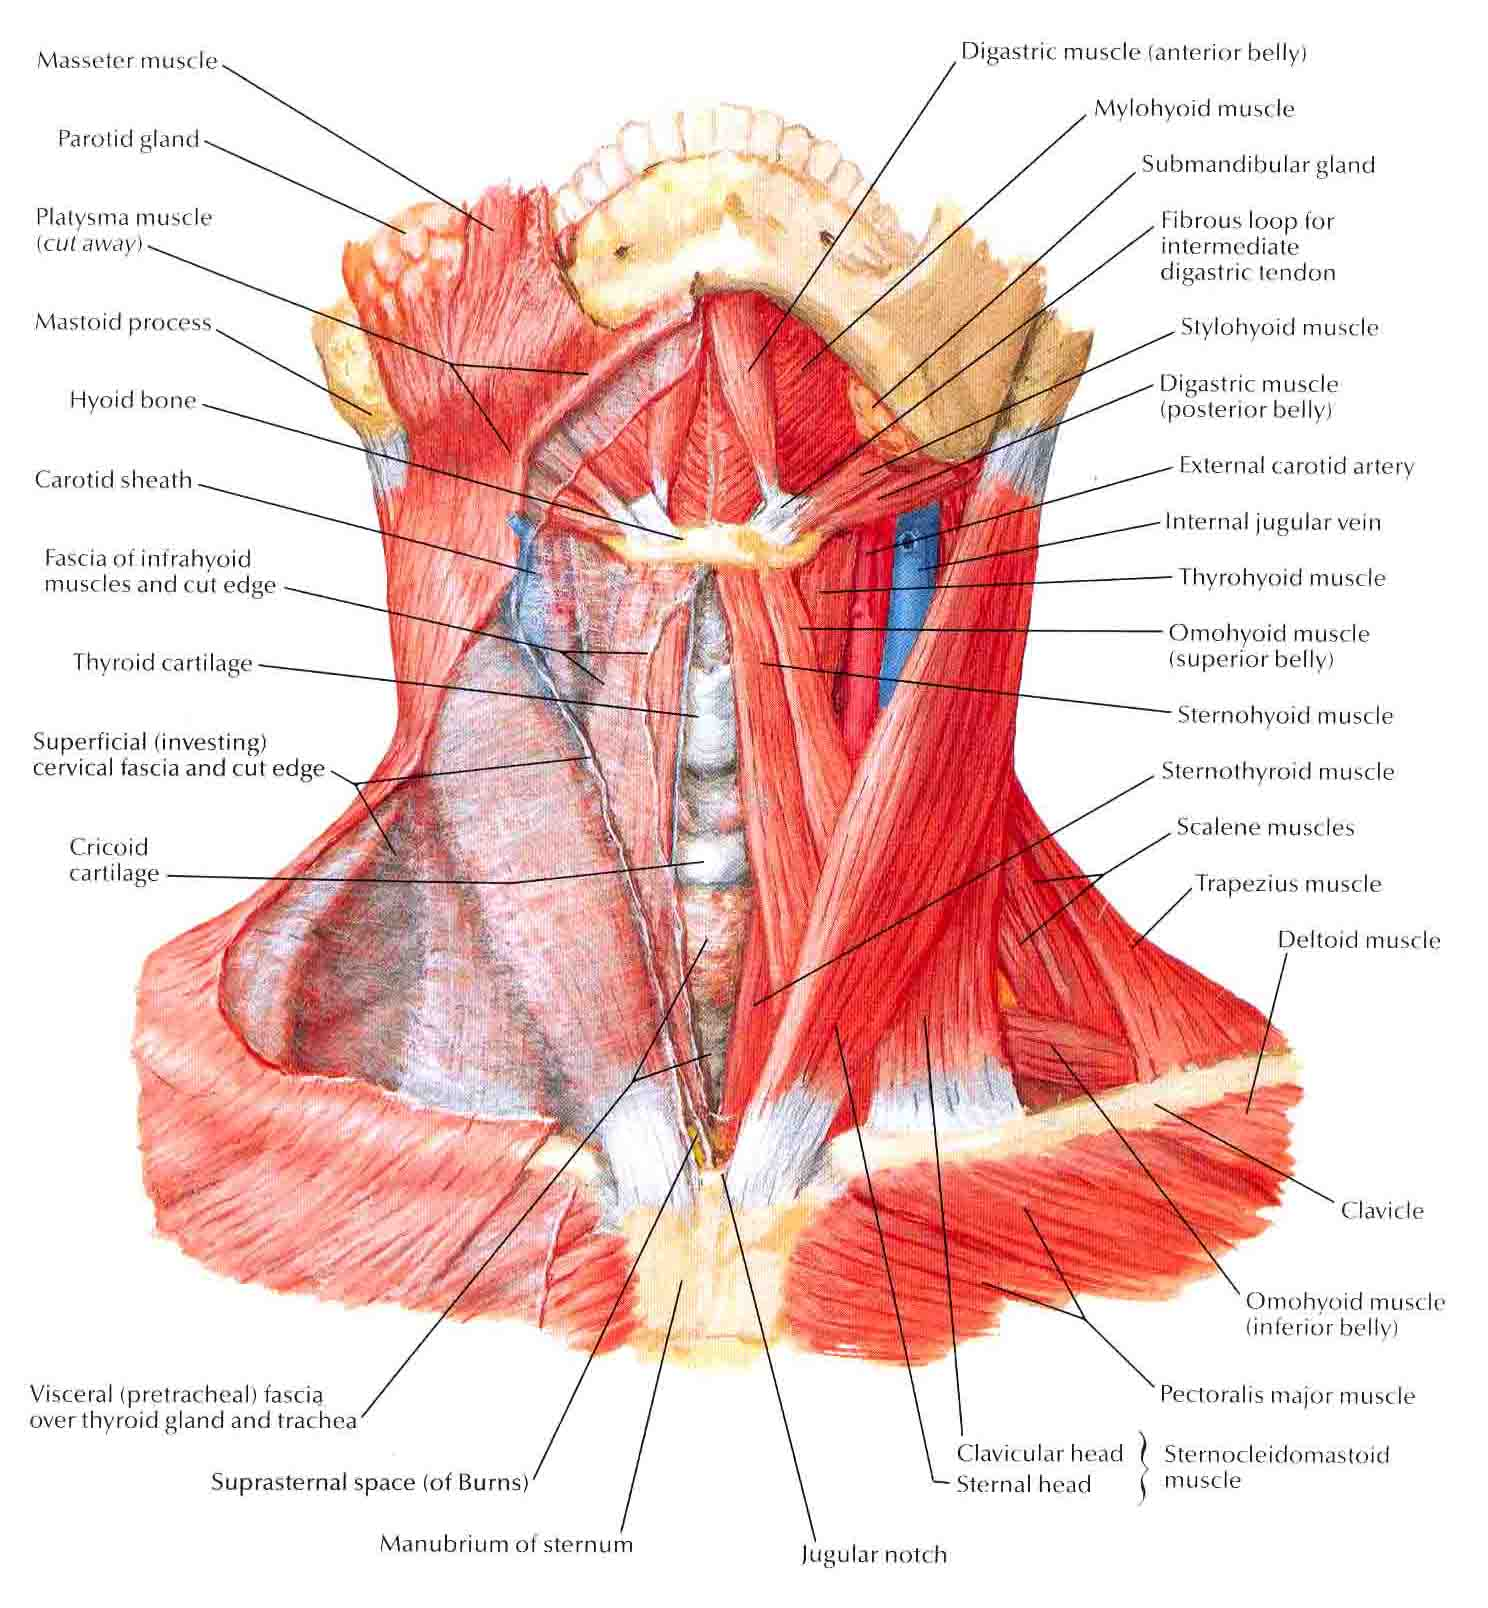 neck muscles exercises - ModernHeal.com